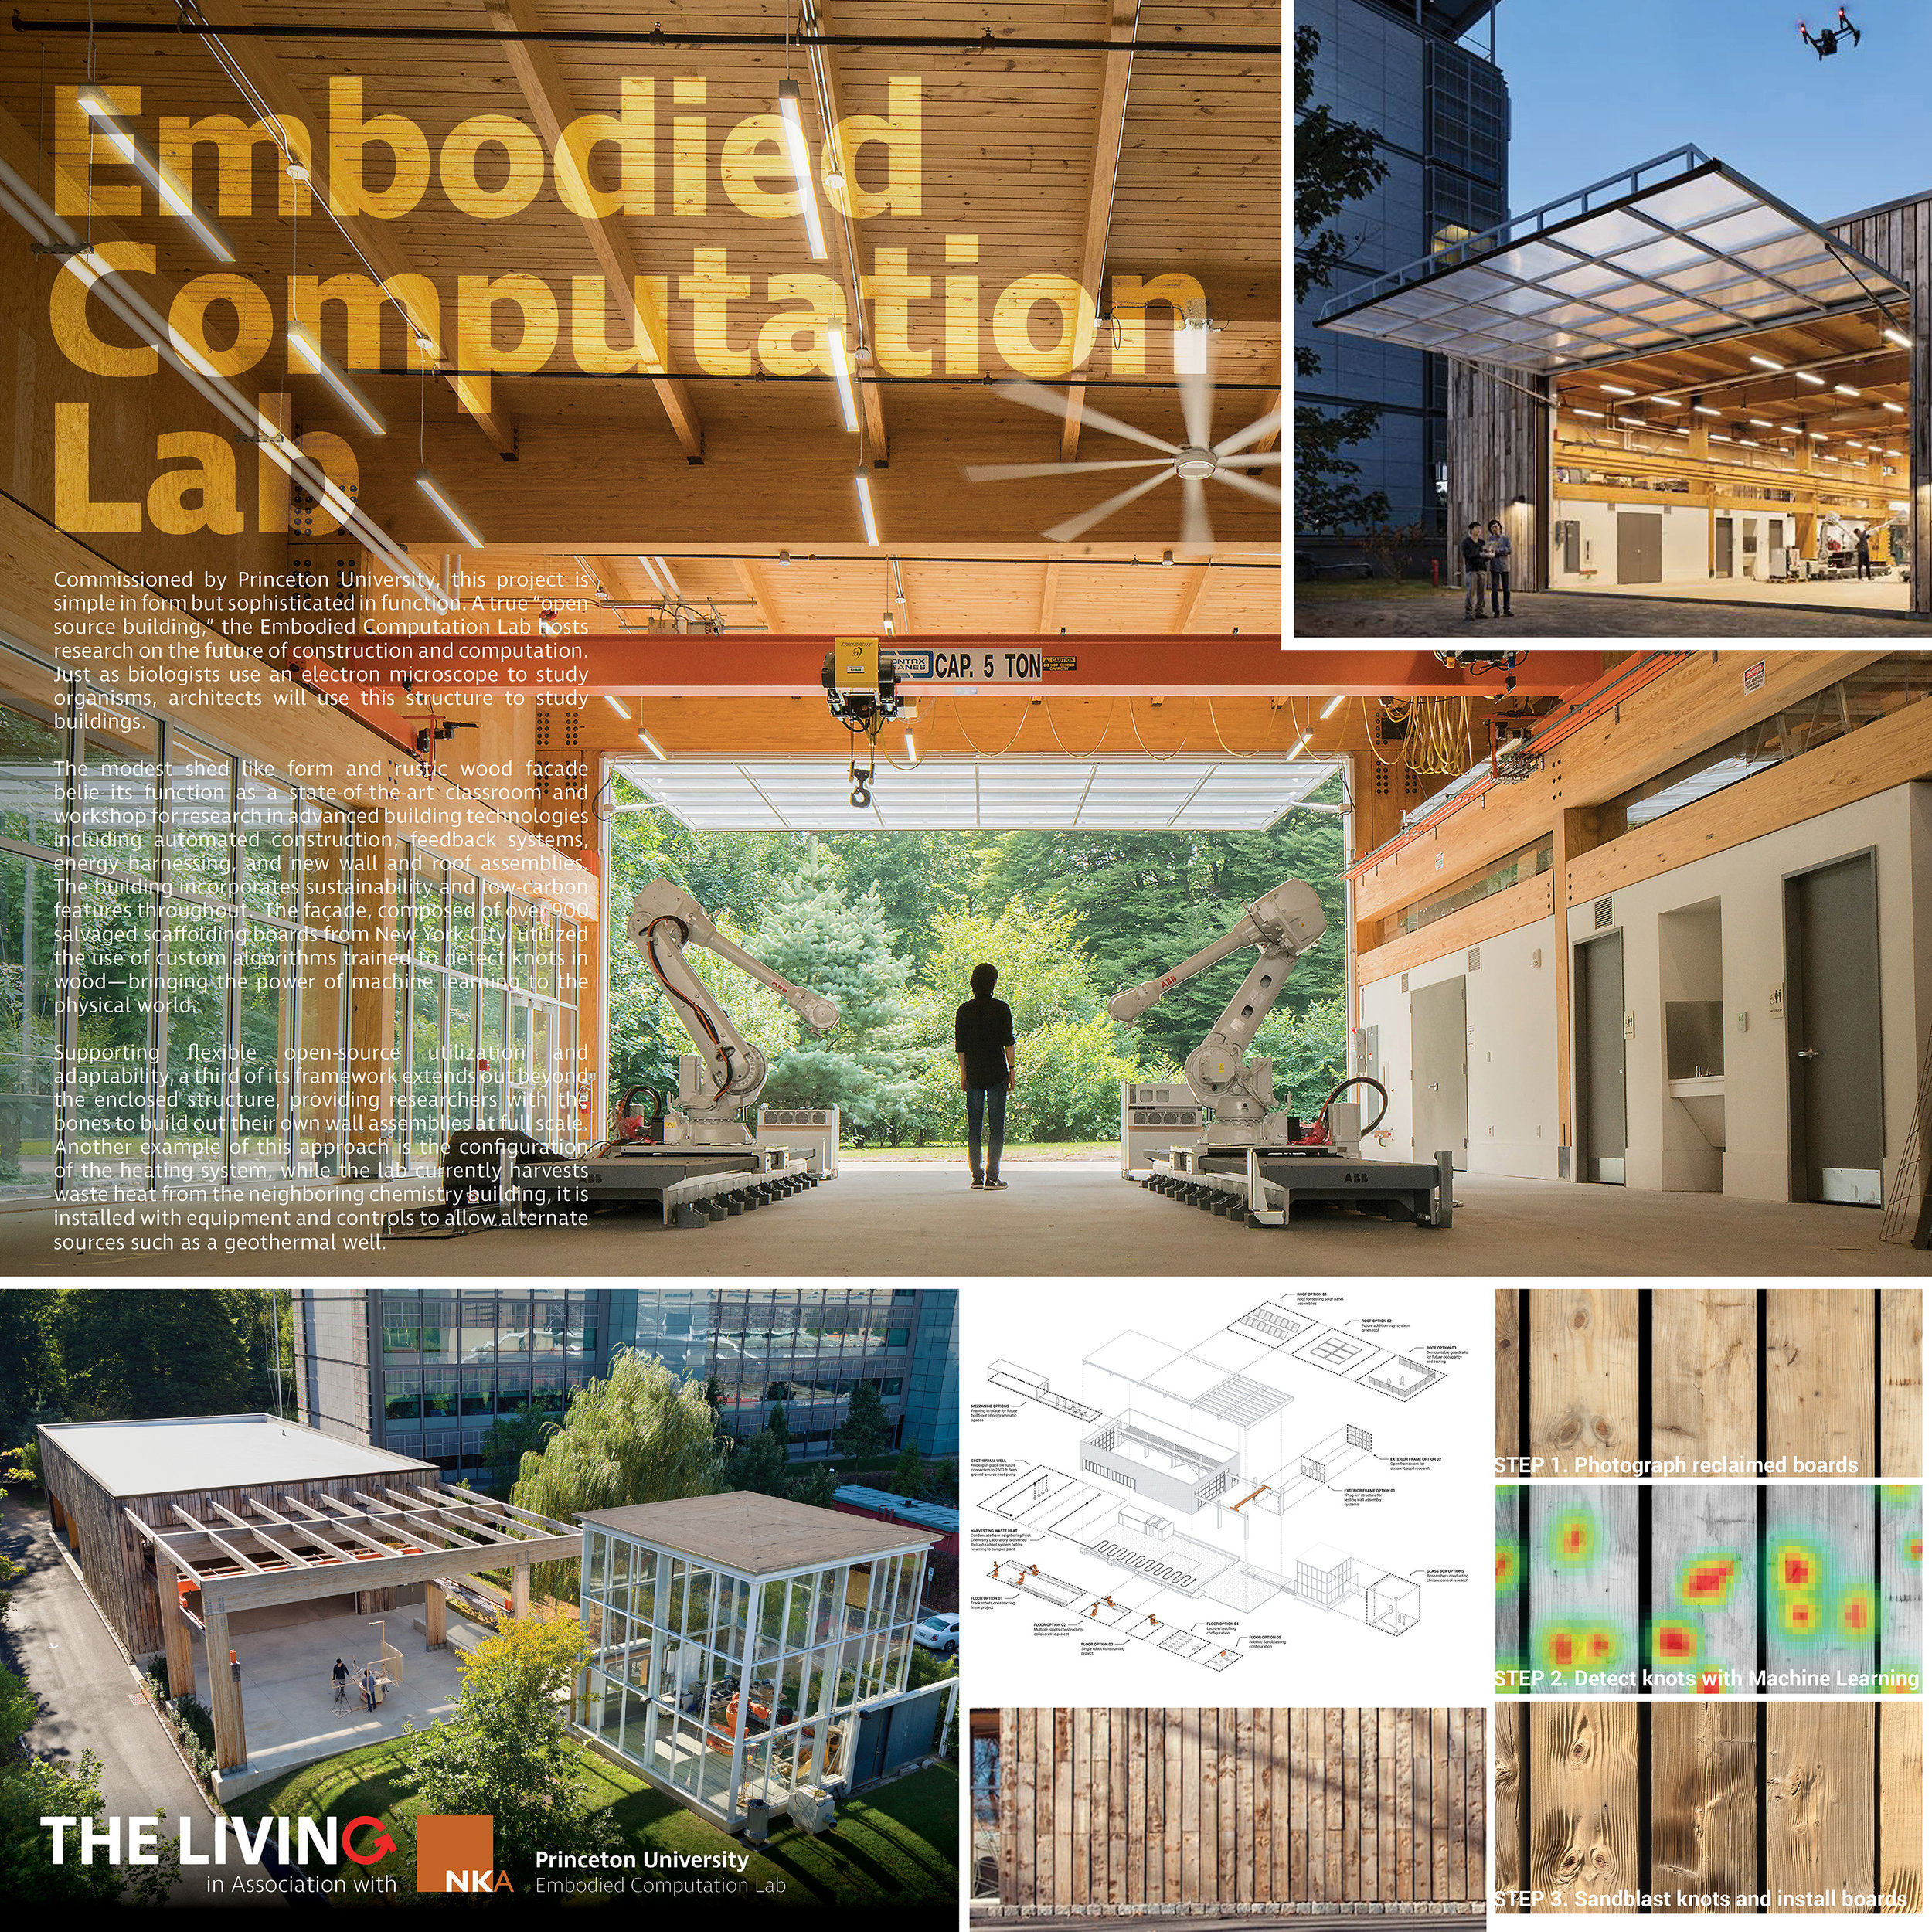 Princeton University - Embodied Computation Lab